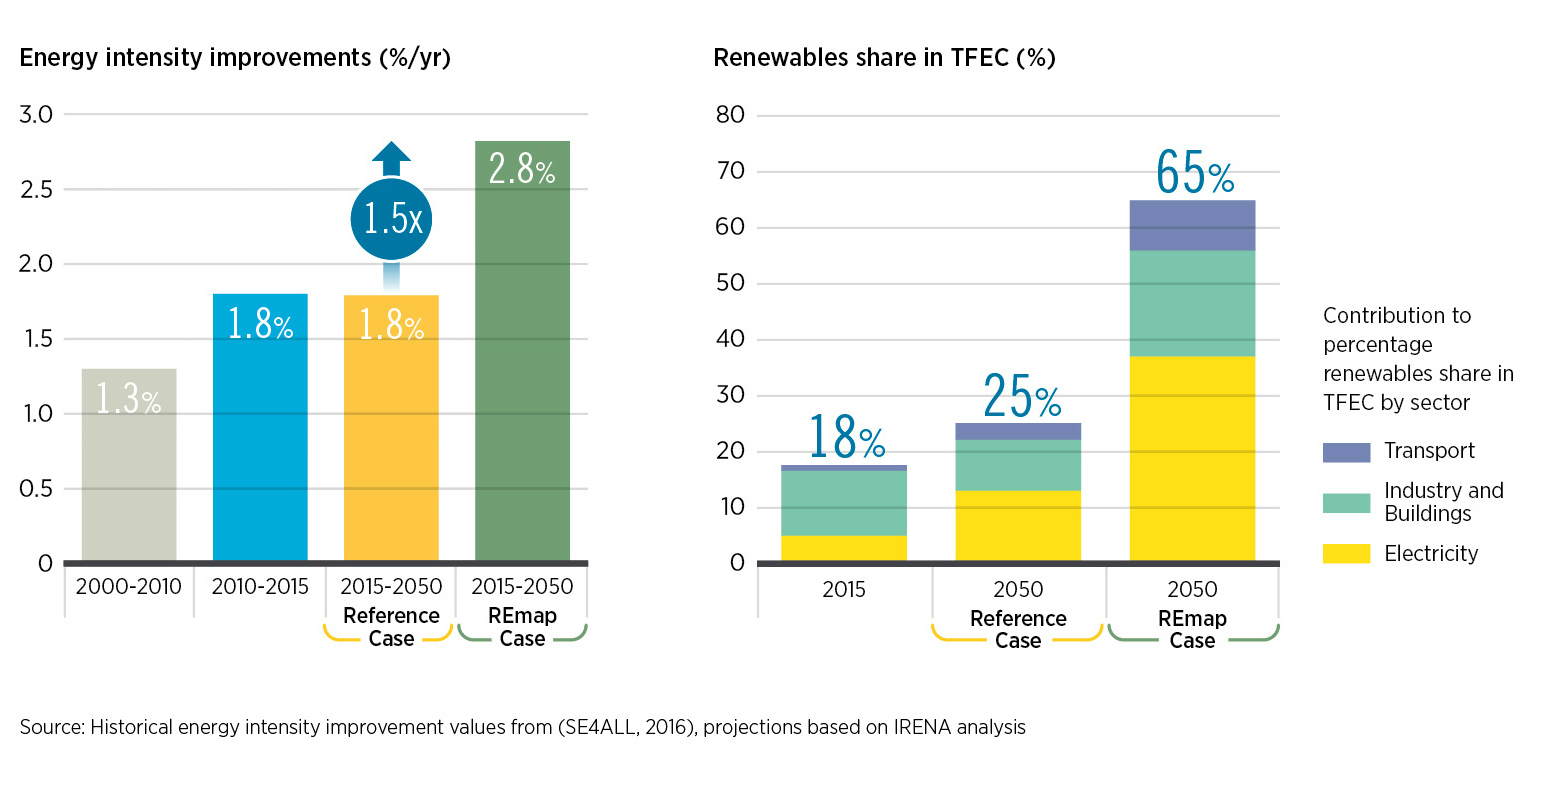 Renewables could make up two-thirds of the energy mix by 2050, with significantly improved energy intensity.